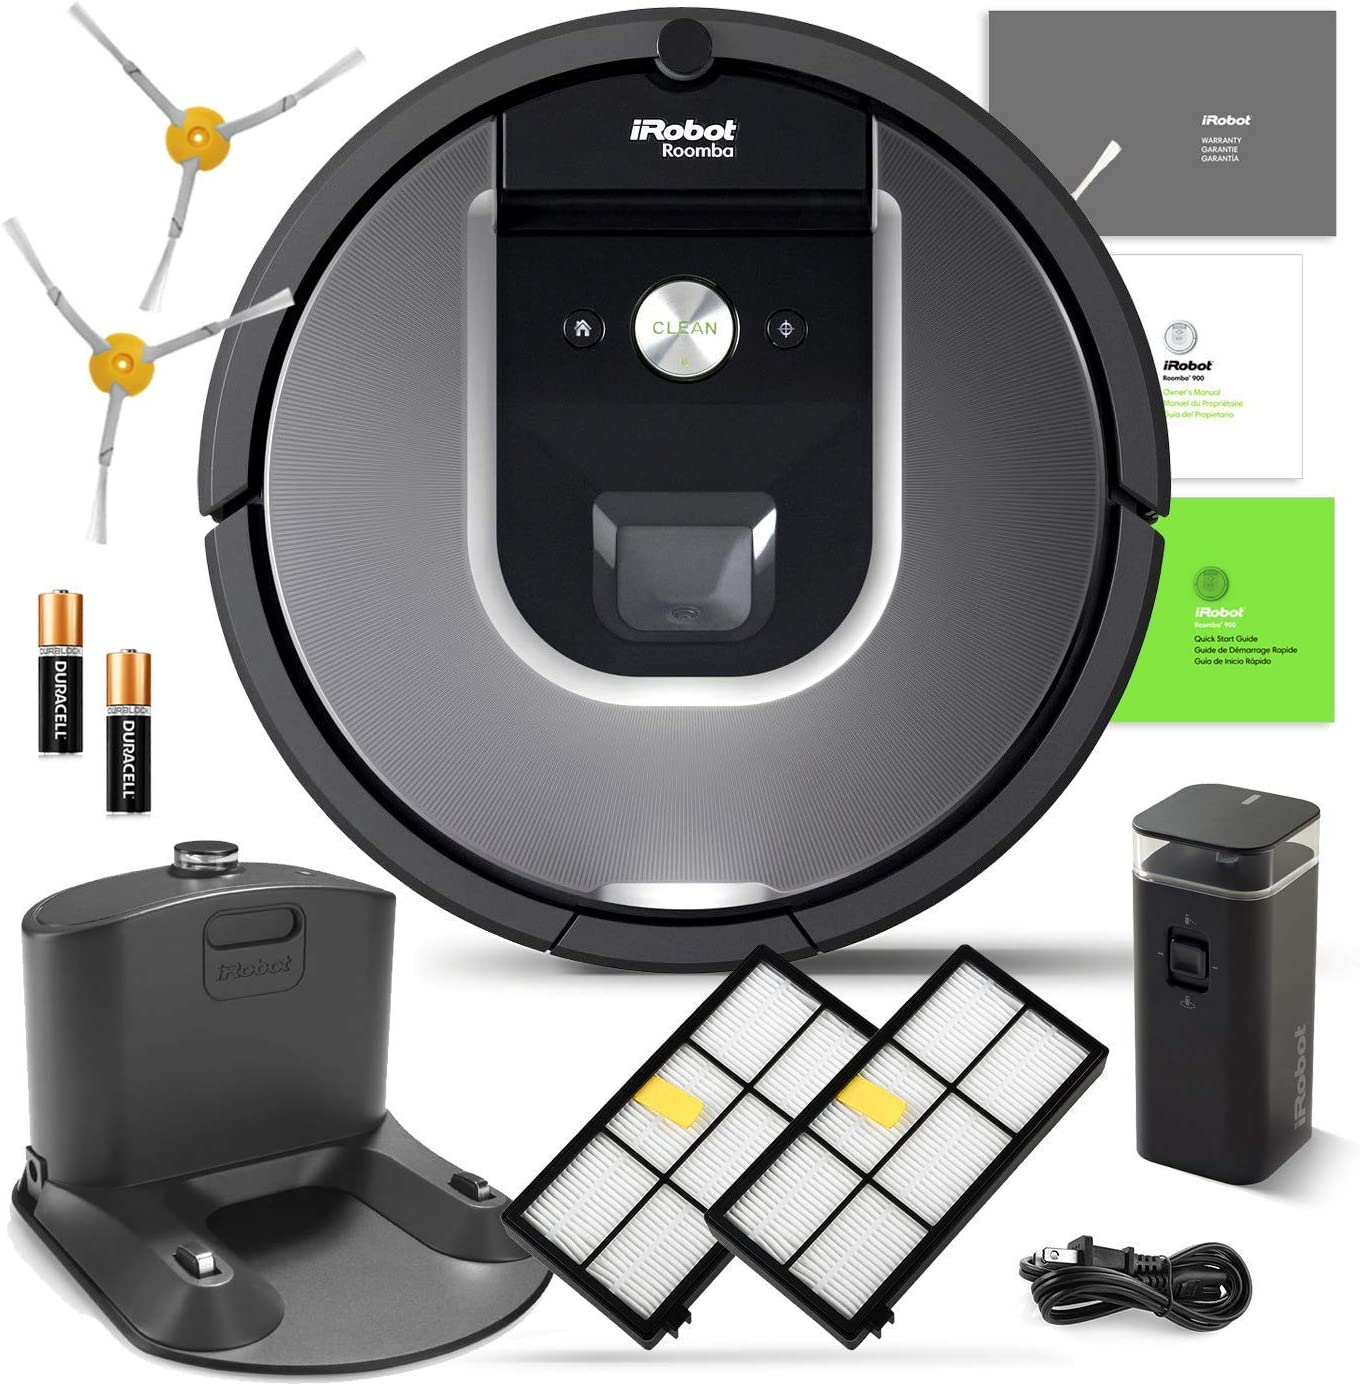 iRobot Roomba 960 Robotic Vacuum Cleaner Wi-Fi Connectivity Manufacturer s Warranty Extra Sidebrush Extra Filter Bundle